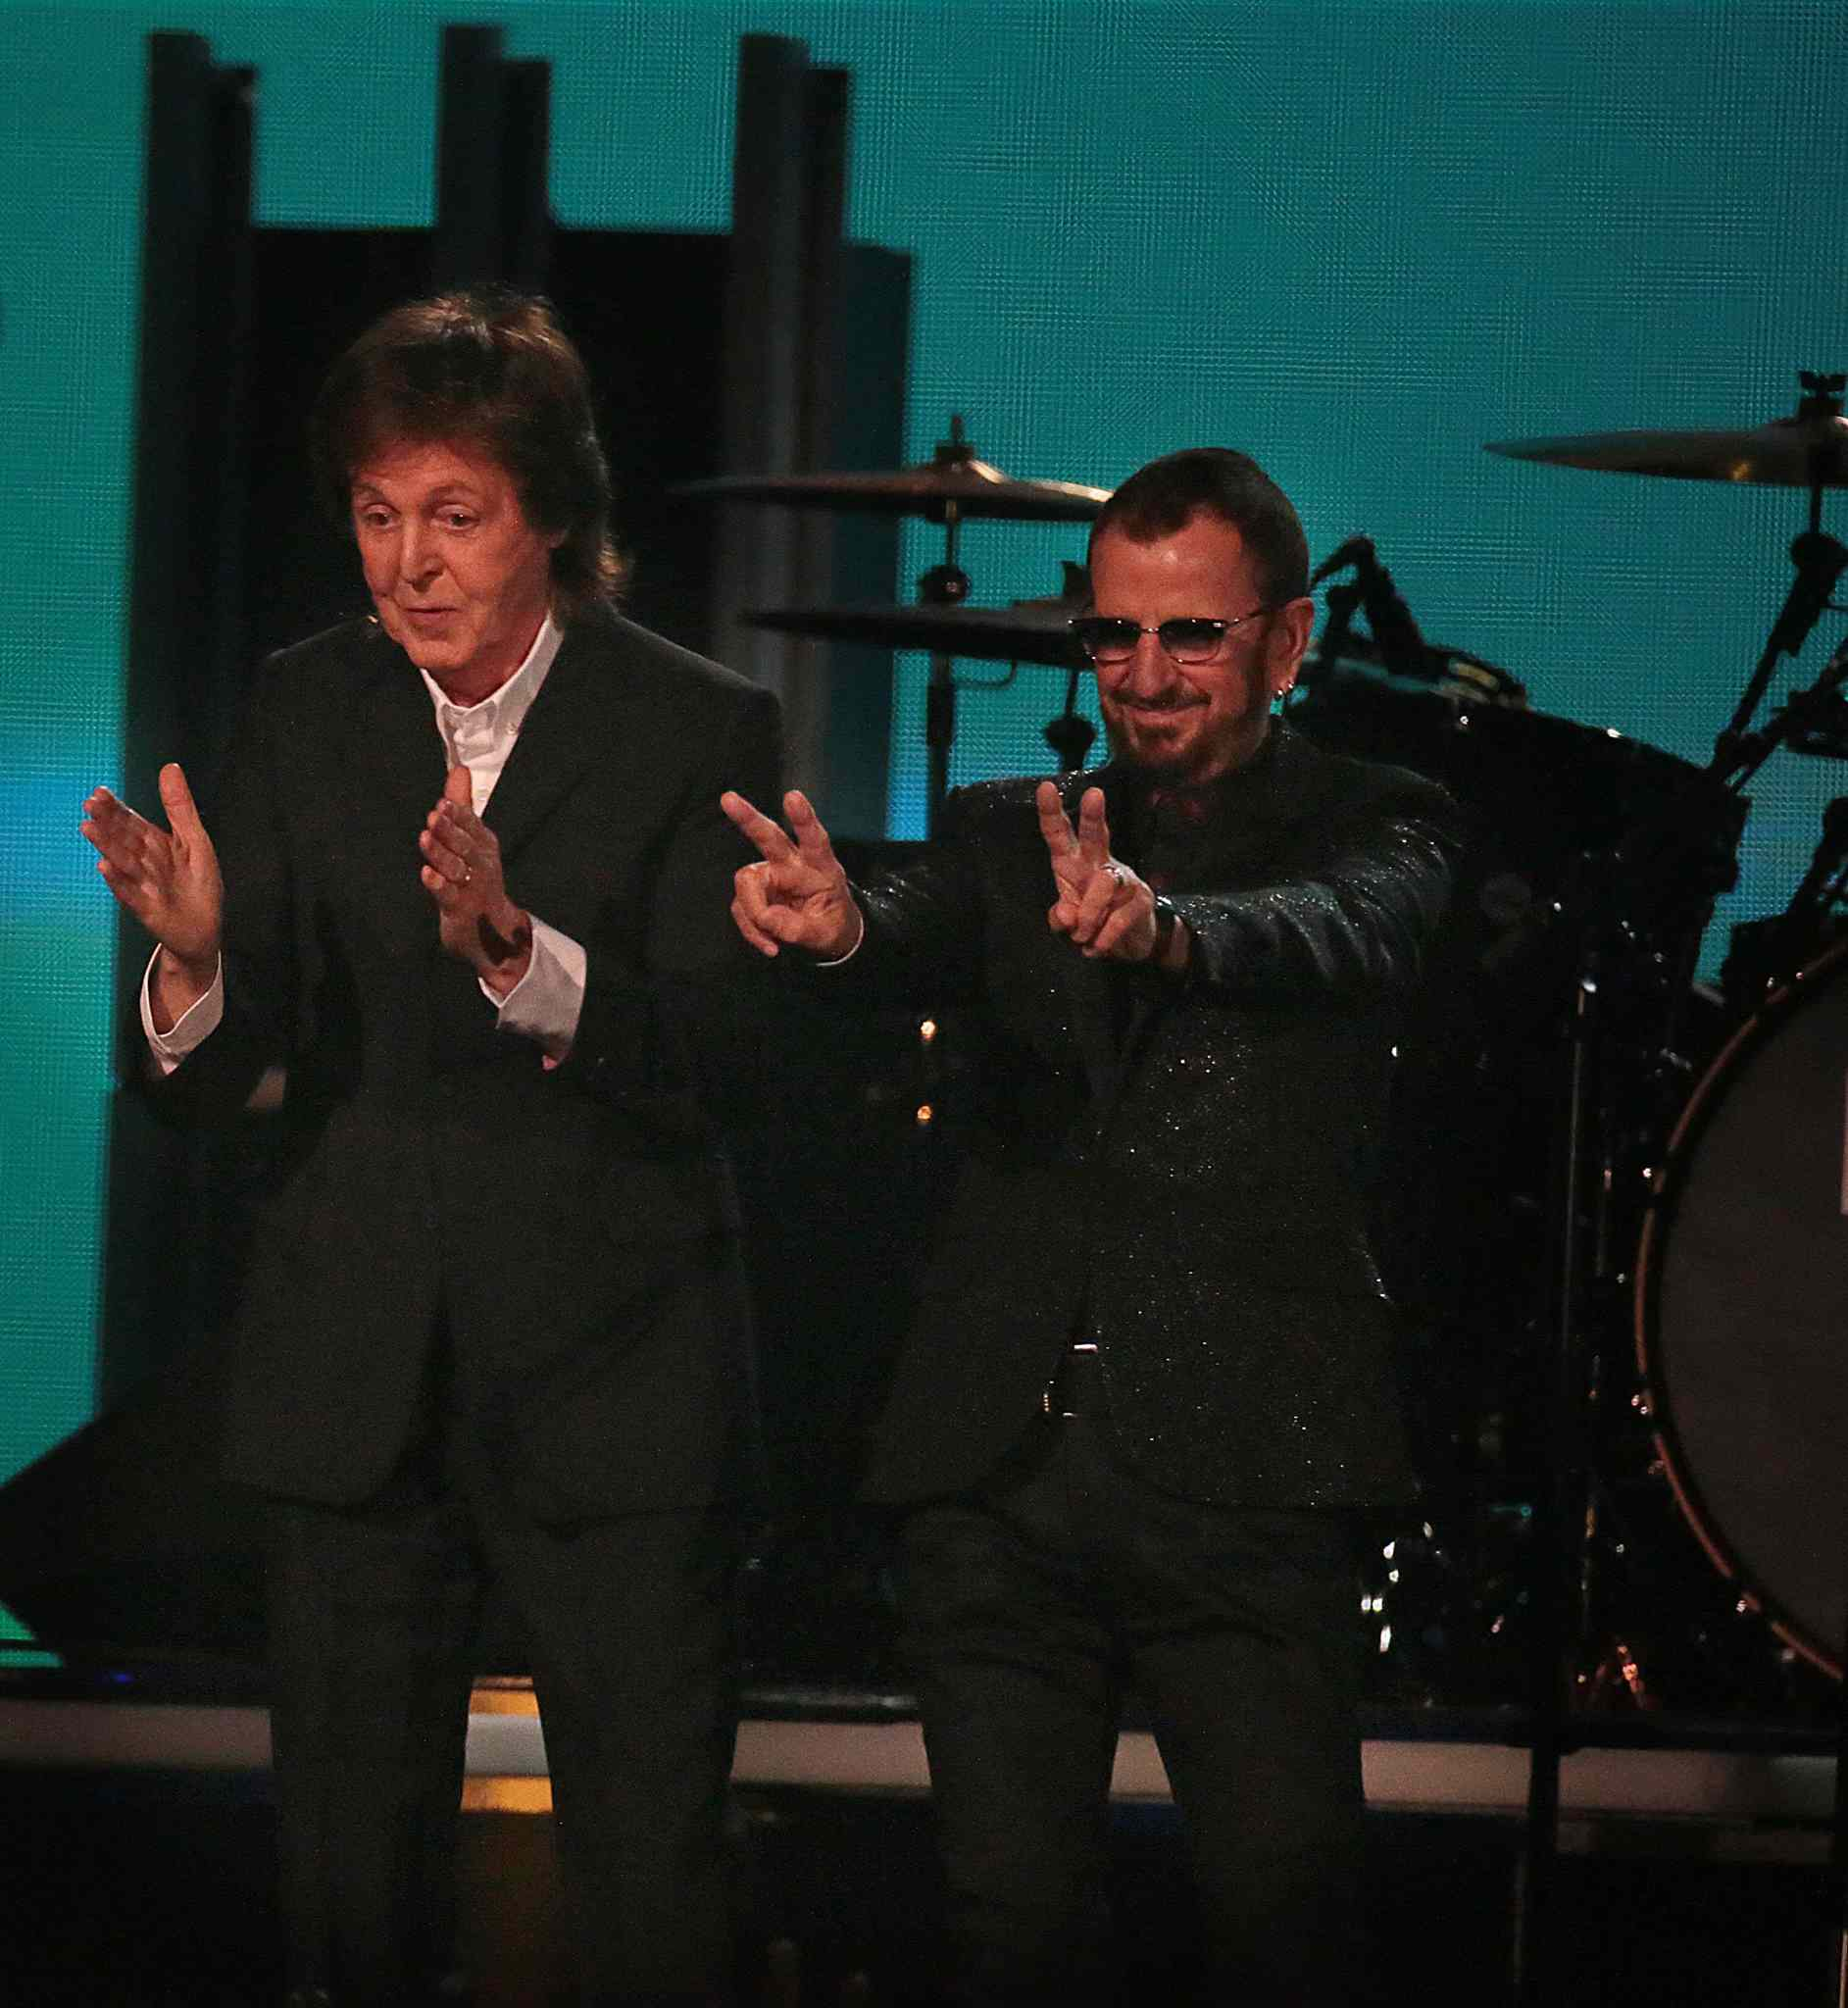 Paul McCartney and Ringo Starr take a bow at the 56th Annual Grammy Awards.